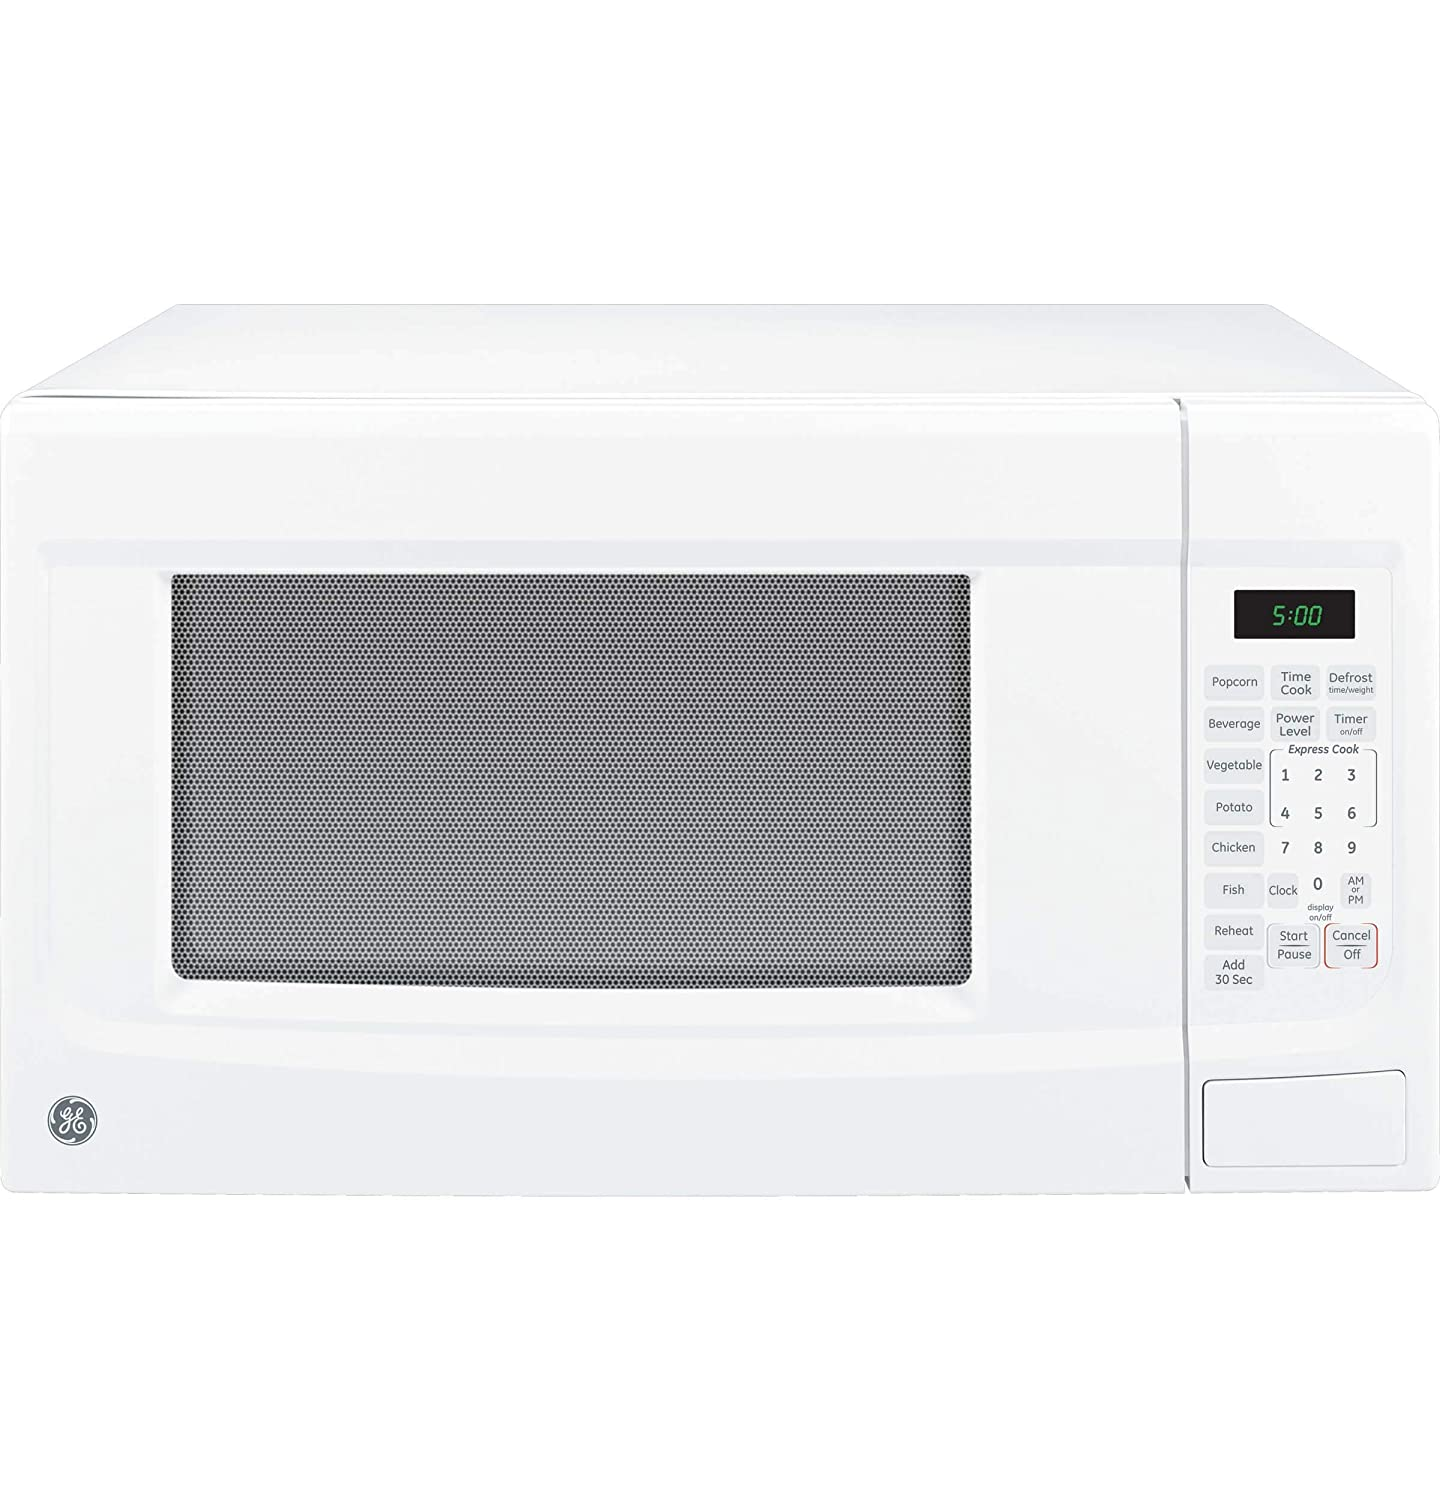 GE JES1460DSWW 1.4 cu. ft. Countertop Microwave - White (Certified Refurbished)